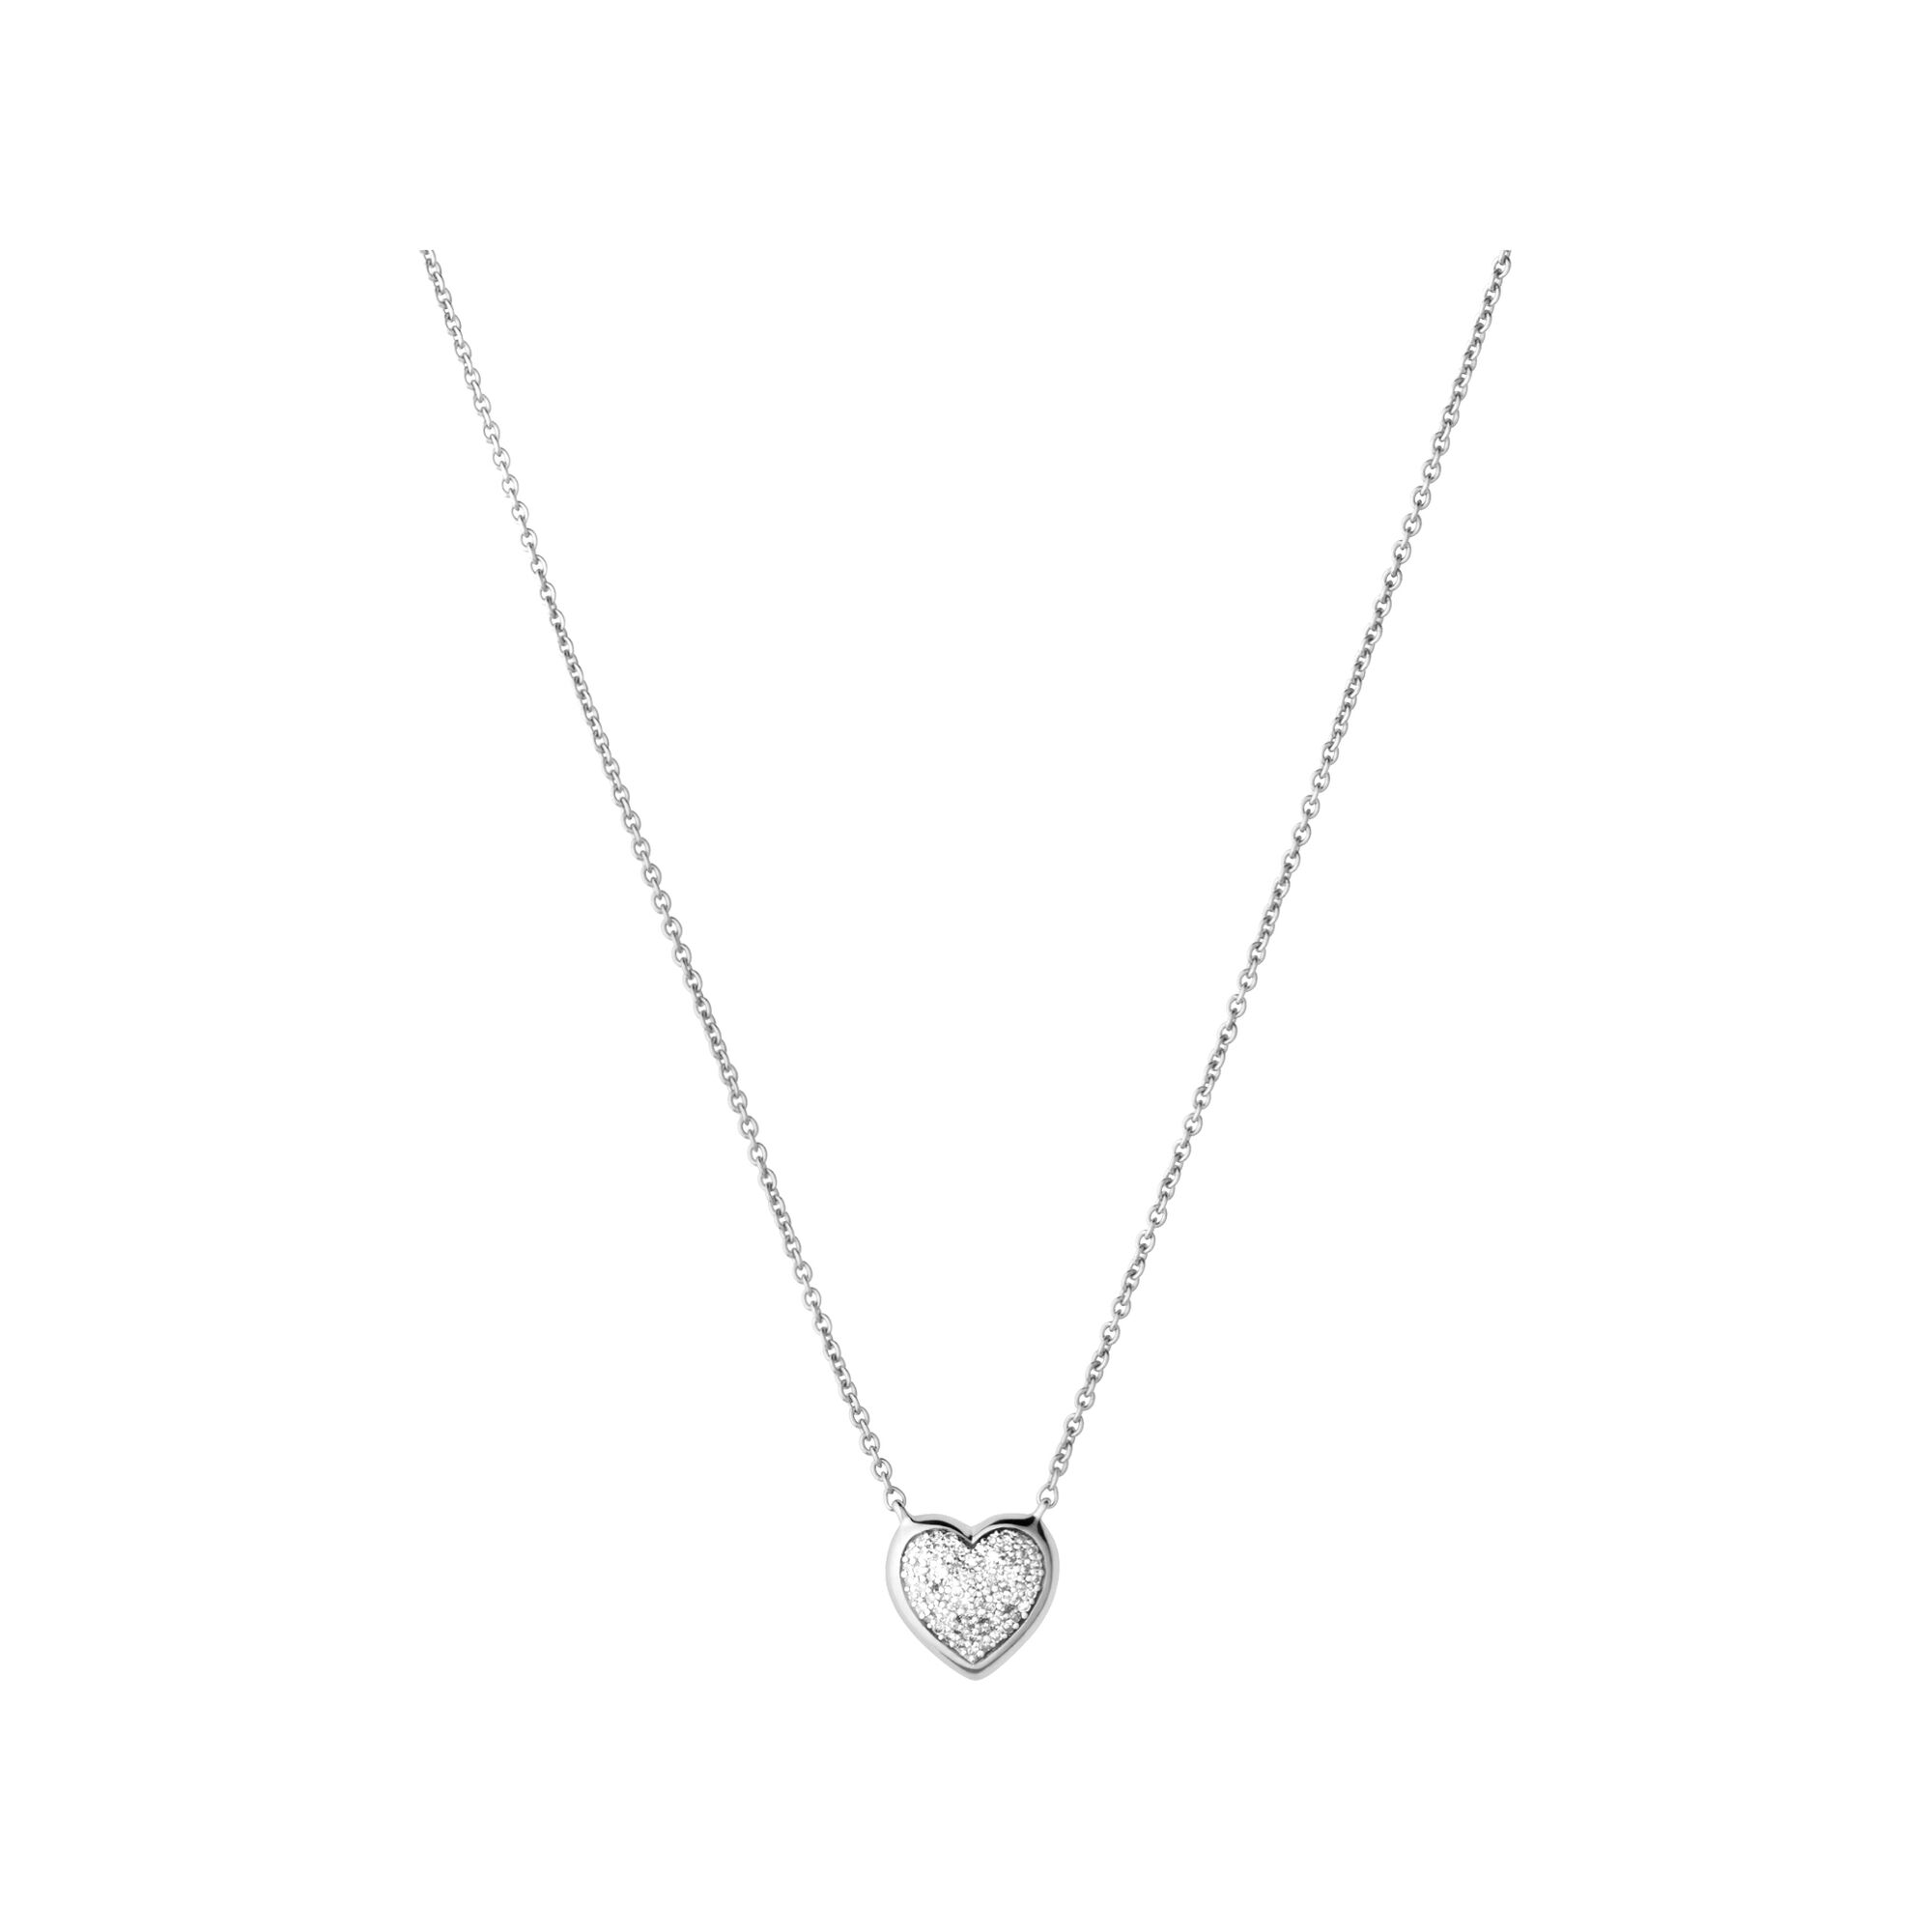 gold papac sterling silver goldheart necklace of plated jewelry copy heart the by products seth x pendant jewellery rough